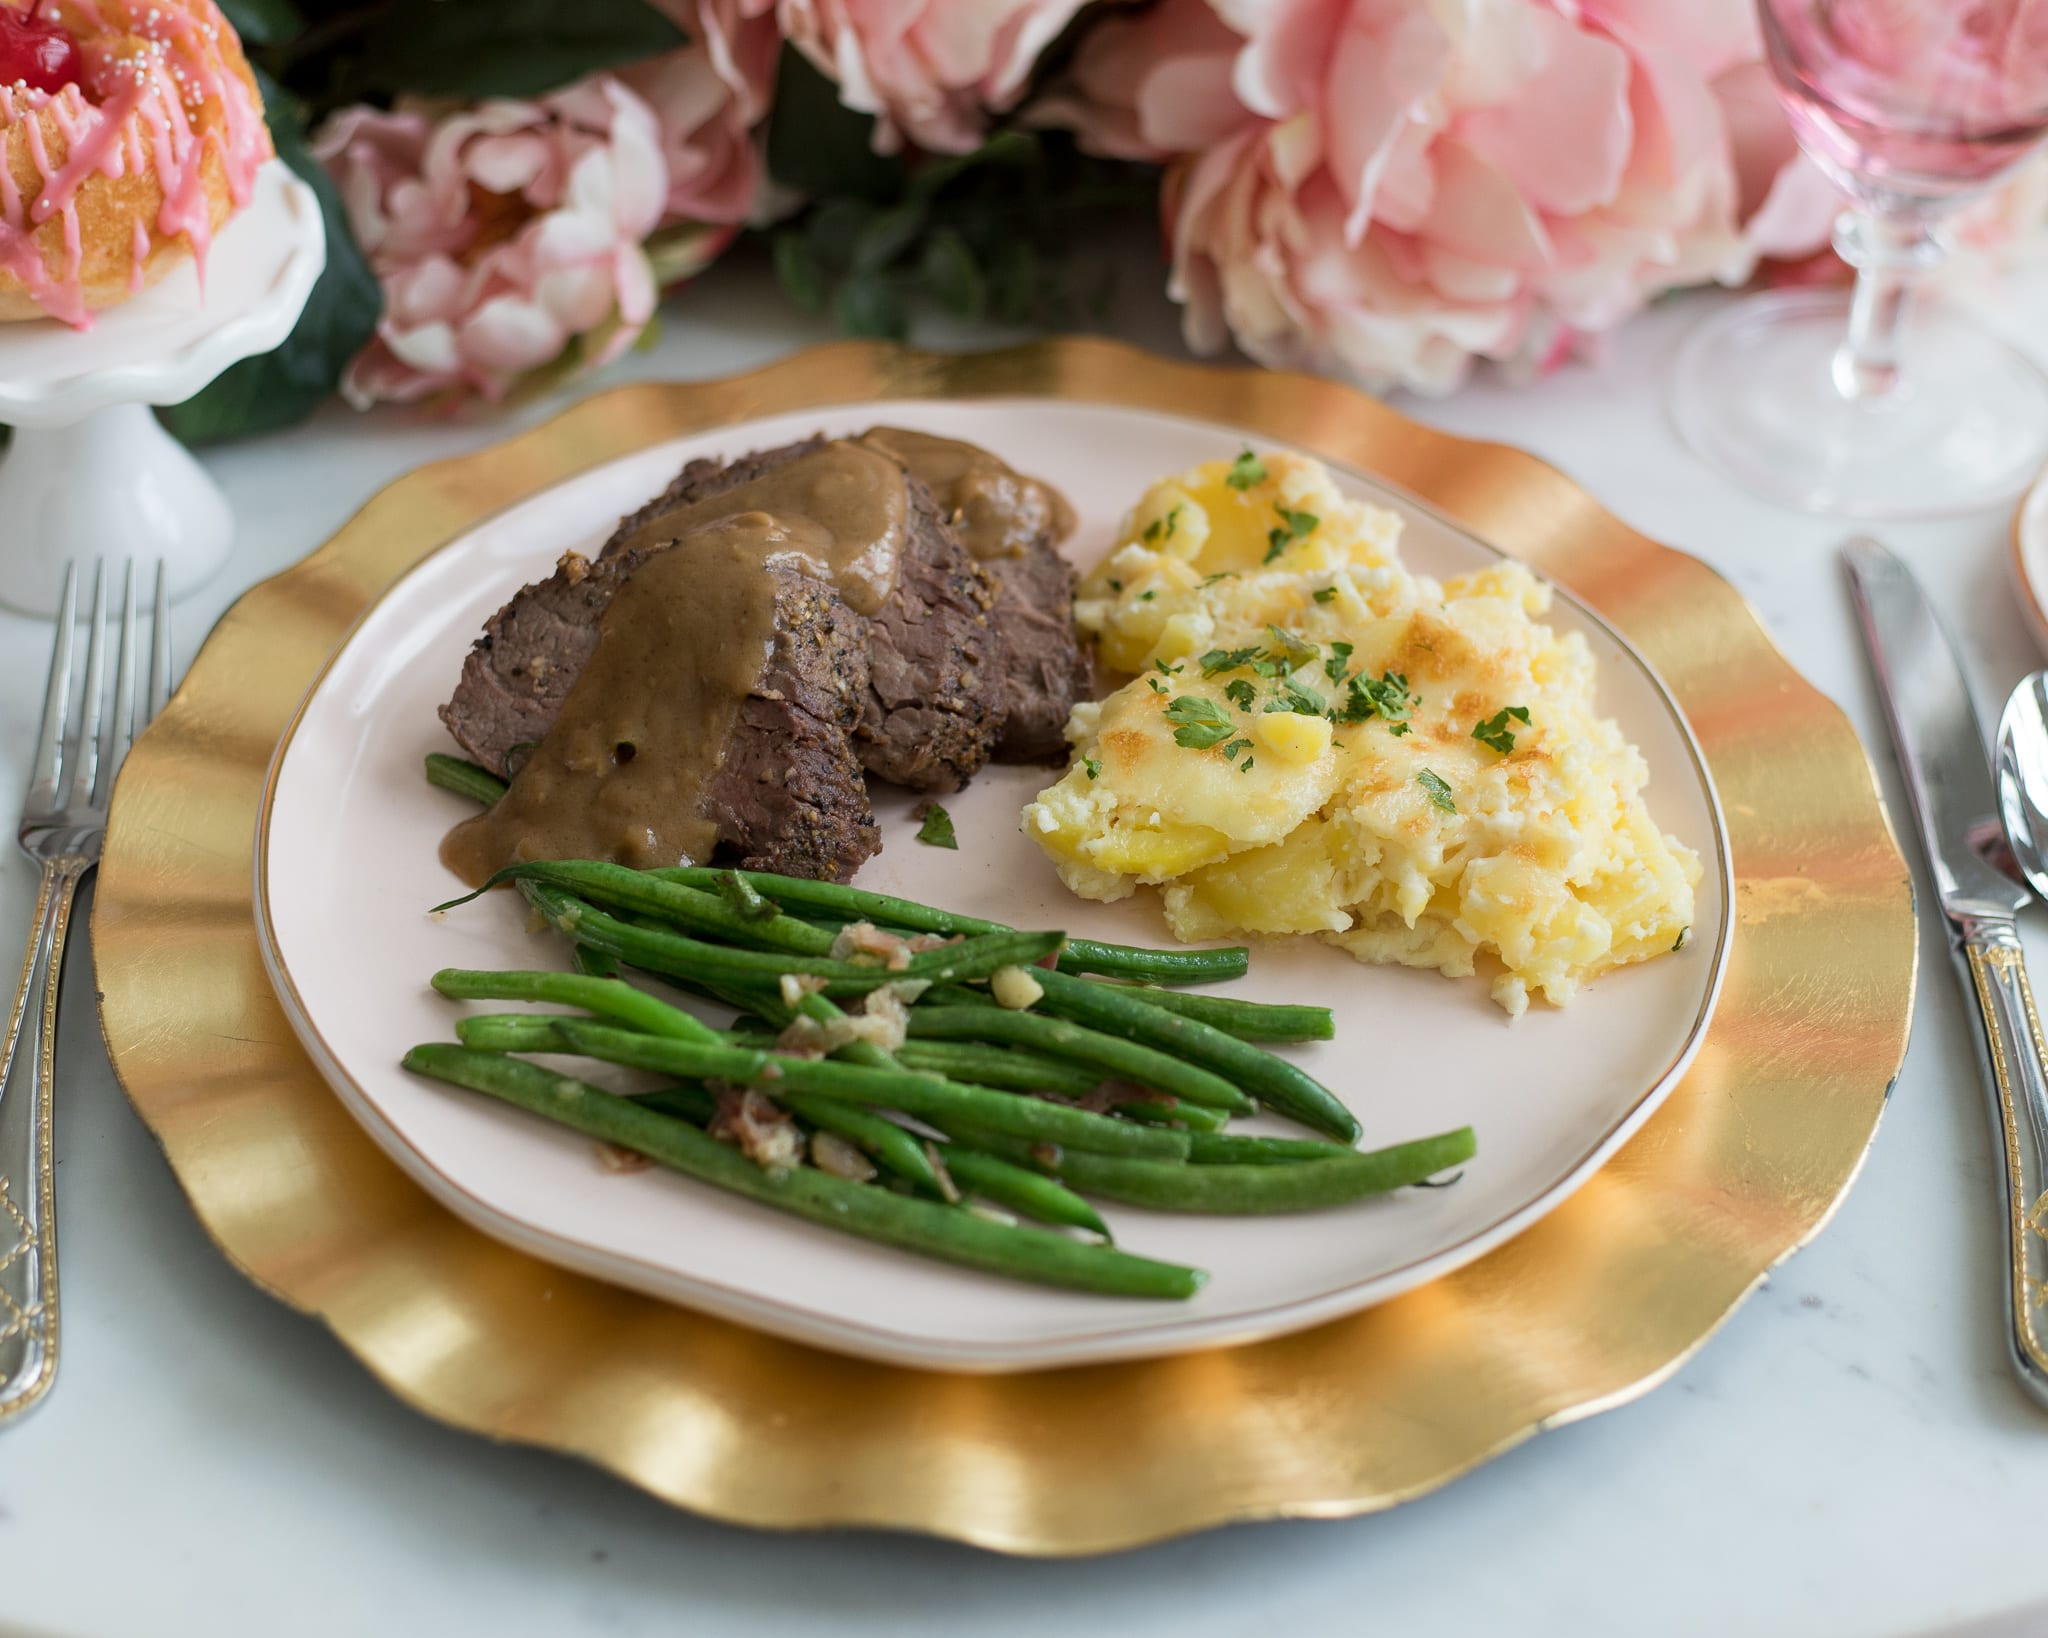 Roasted Beef Tenderloin main course beef recipes dinner ideas beef tenderloin roasting meat scalloped potatoes green beans